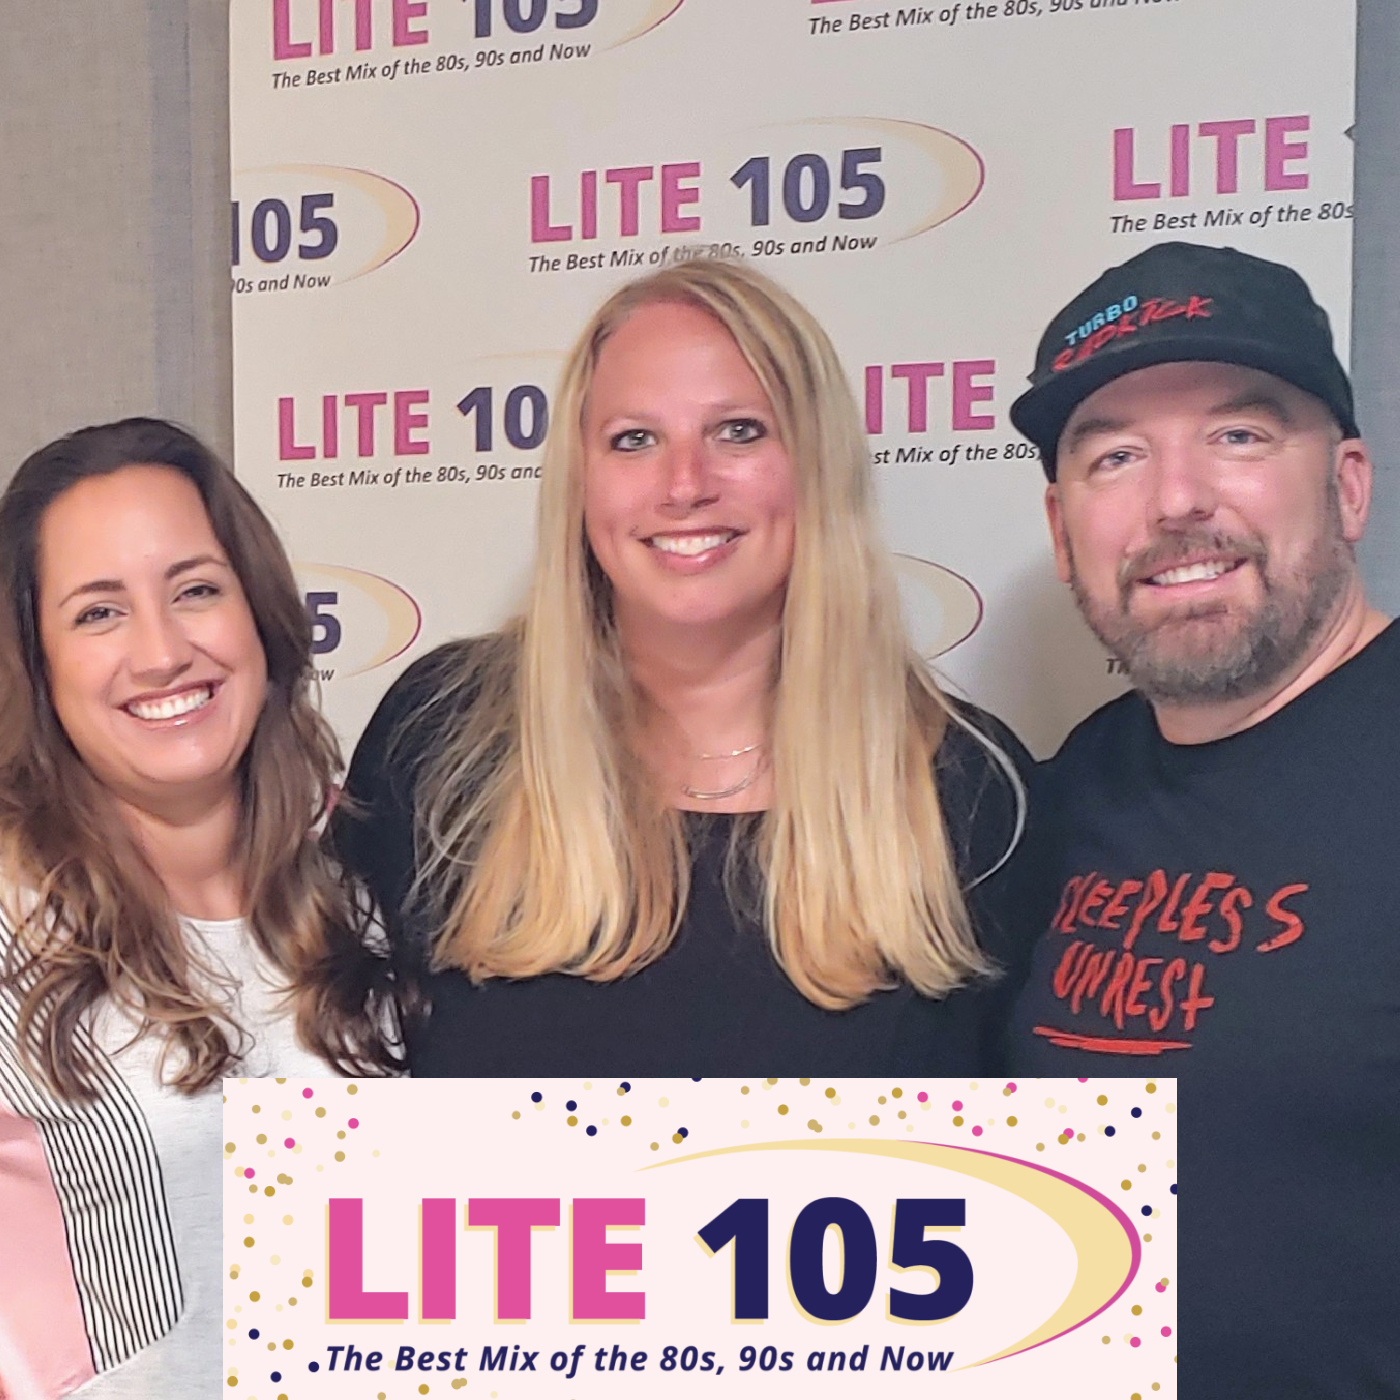 Kendall & Vera Whelpton from THE SLEEPLESS UNREST visit with Heather on Lite 105